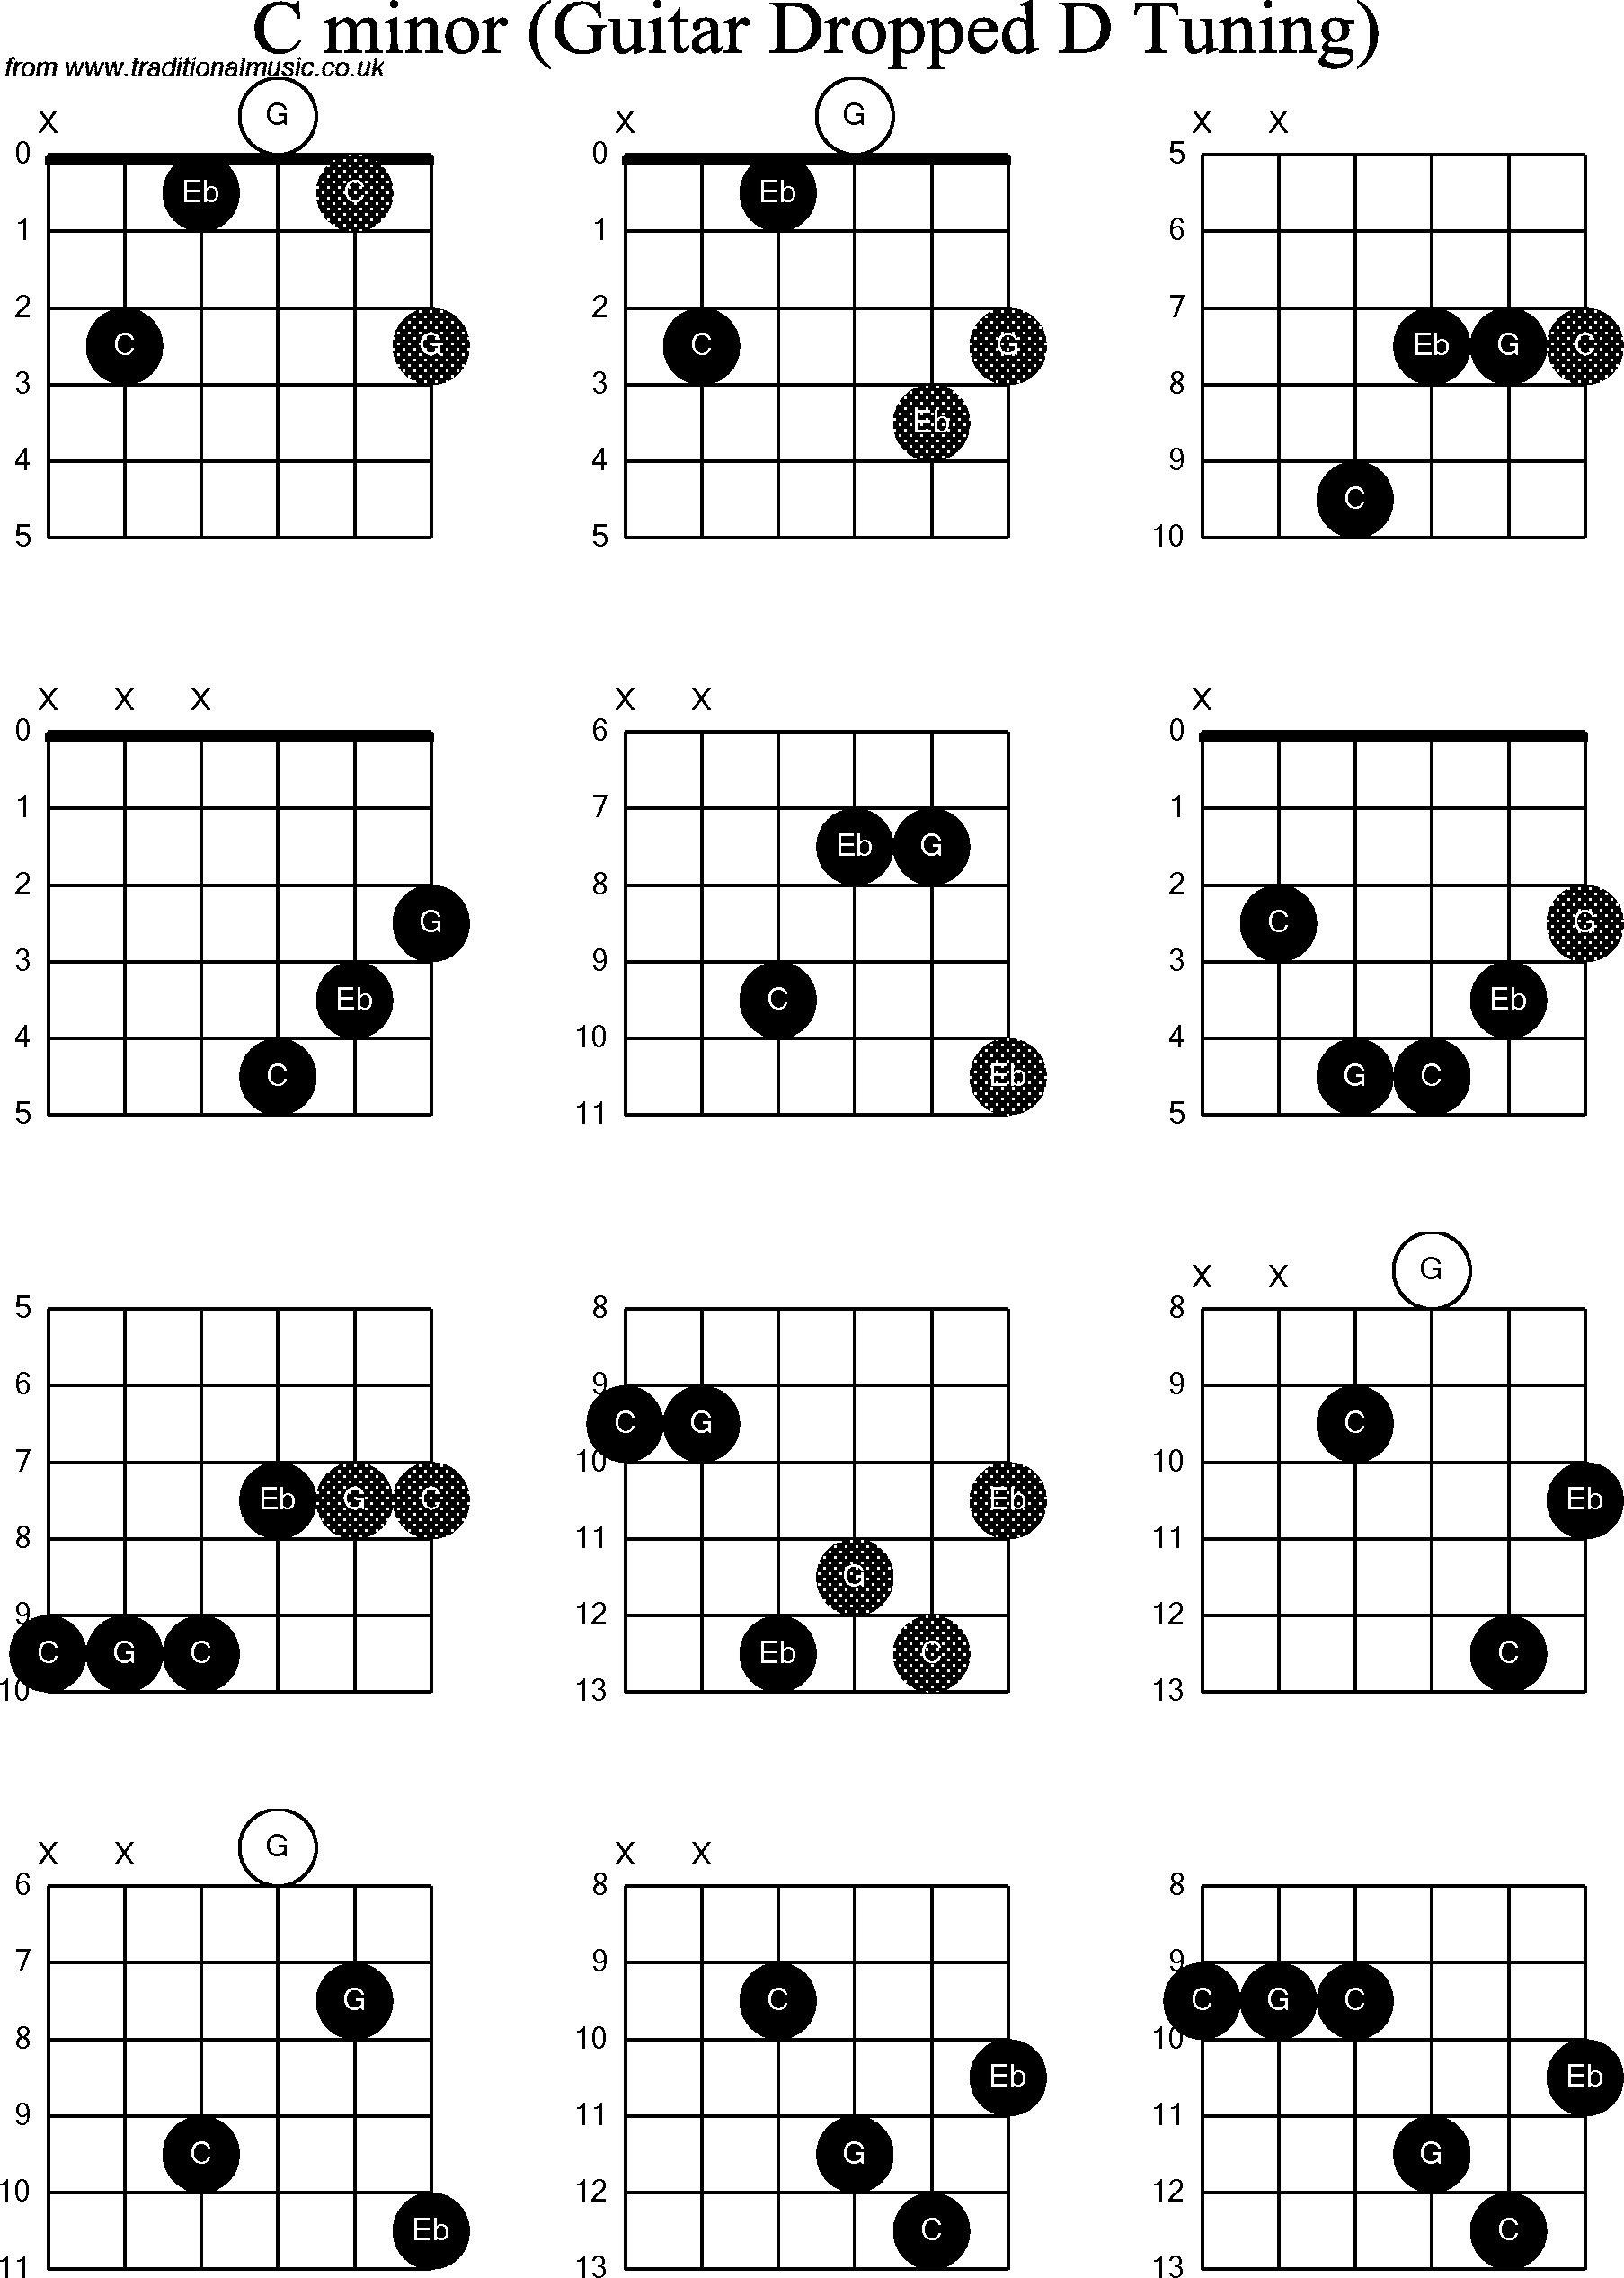 C M Chord Chord Diagrams For Dropped D Guitardadgbe C Minor